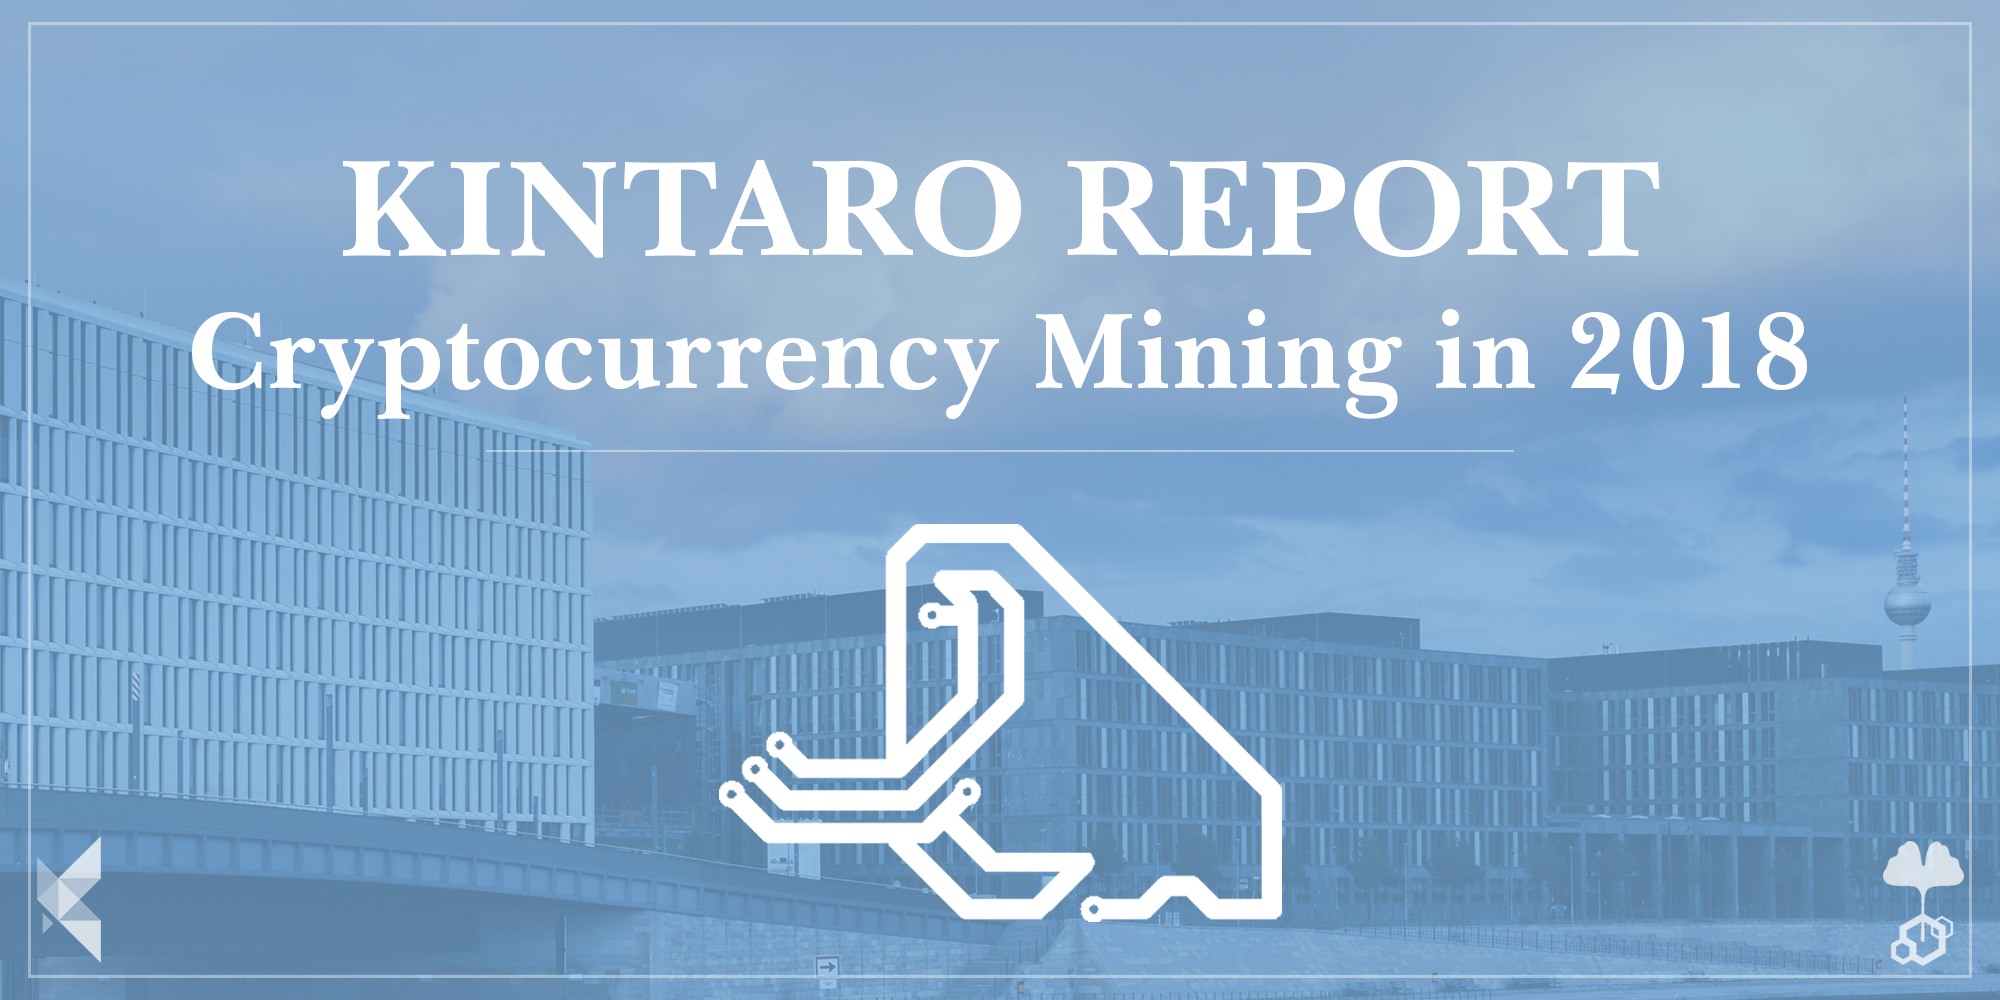 Report: Cryptocurrency Mining in 2018